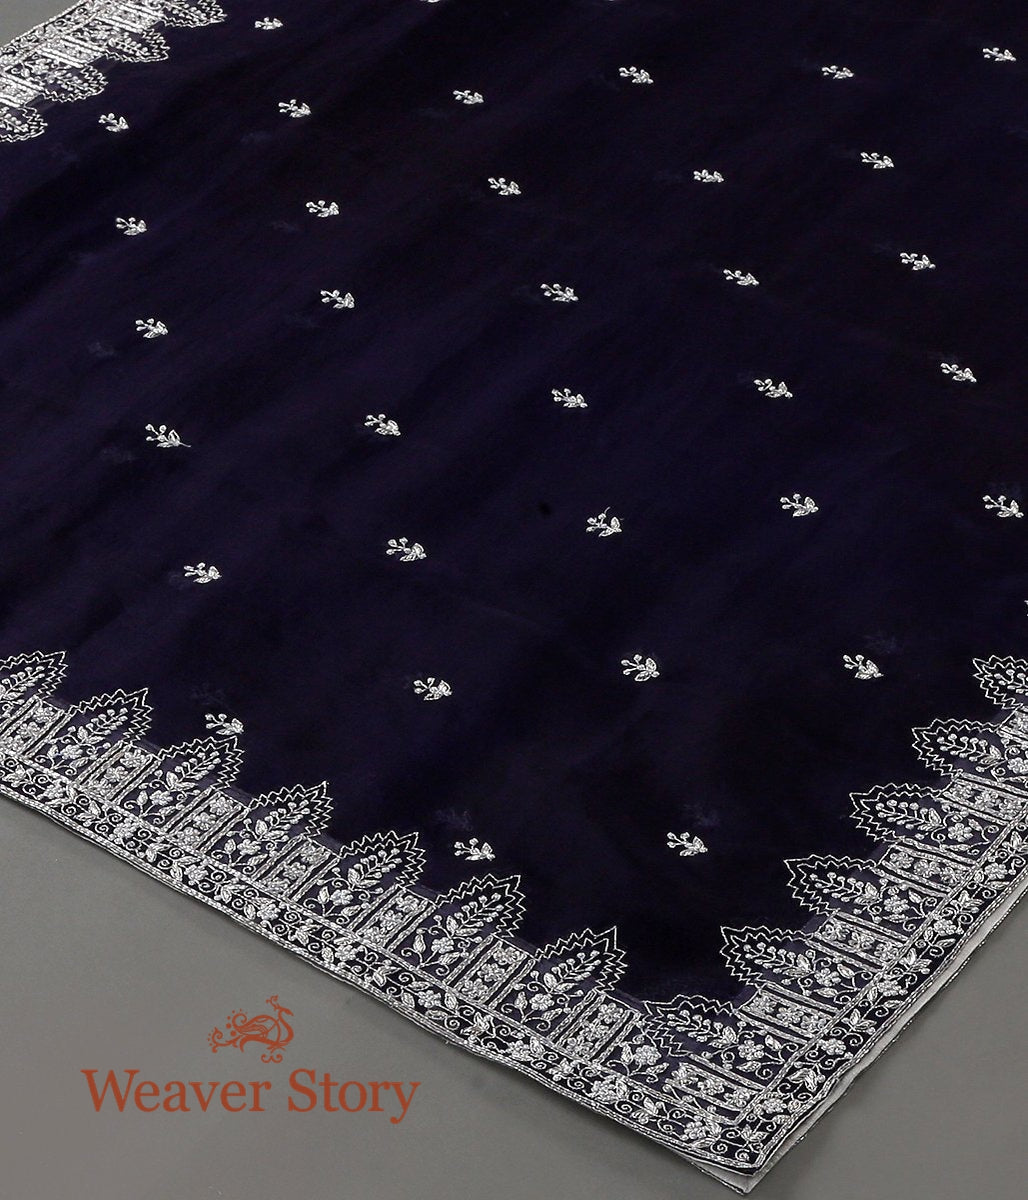 Blue Zardozi Work Organza Dupatta with Silver Embroidery Temple Border